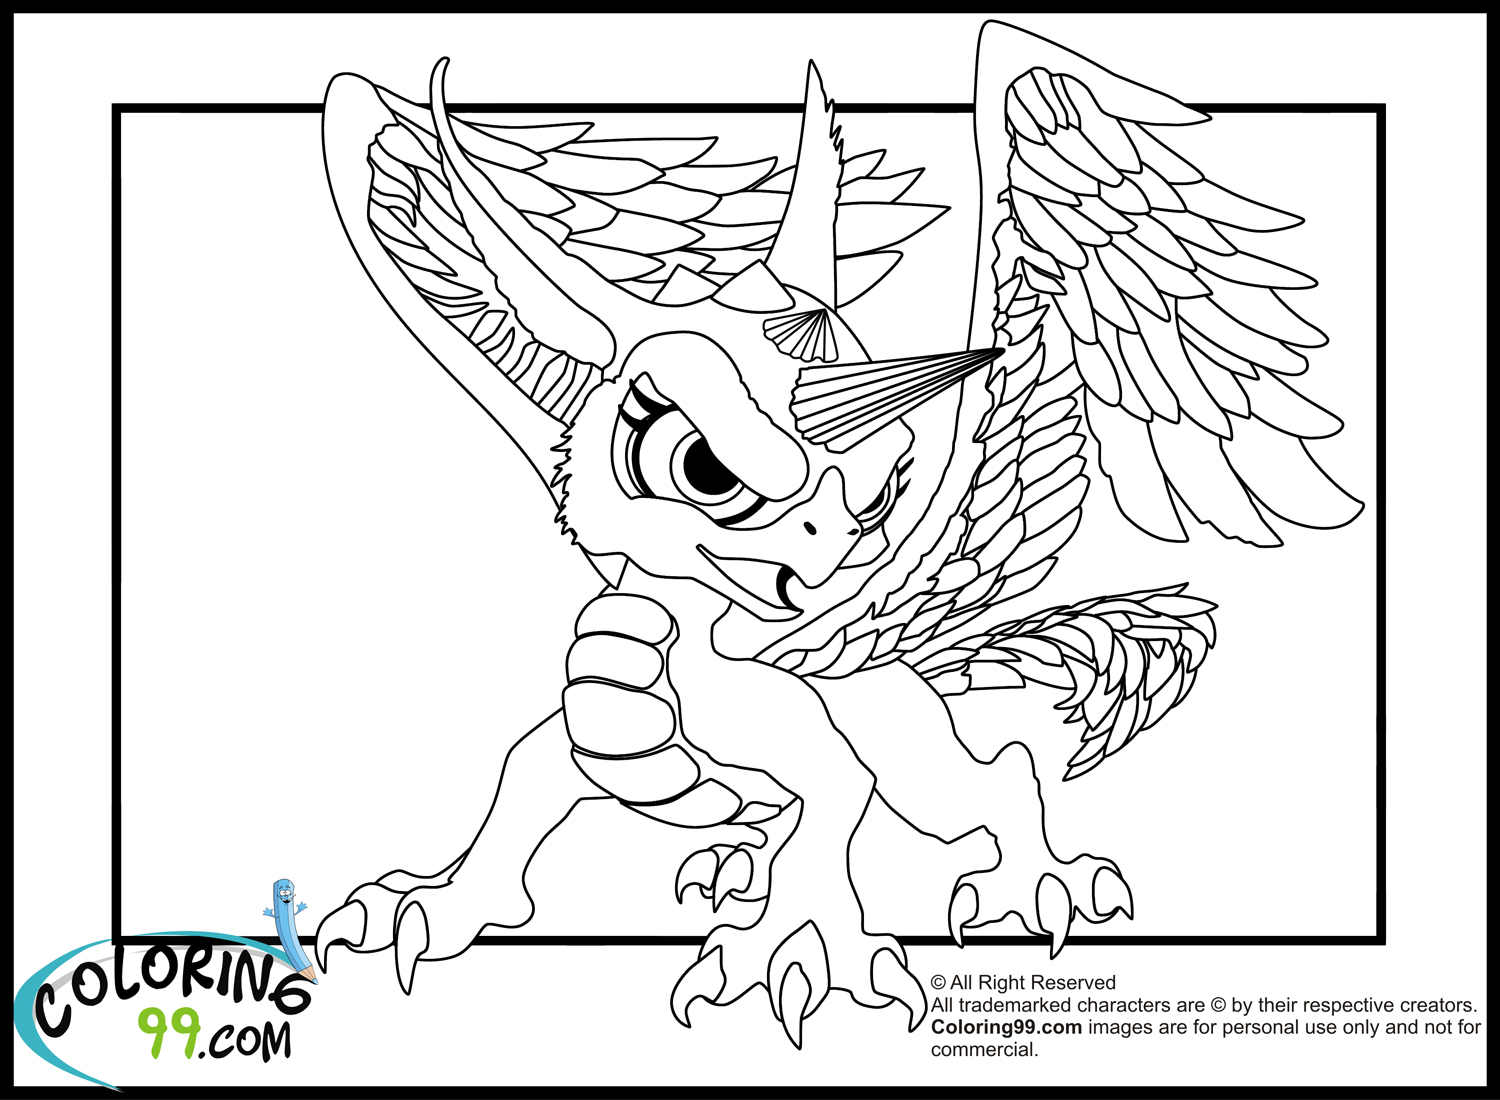 Lego Elves Dragon Gust Coloring Page Lego Elves Water Dragon